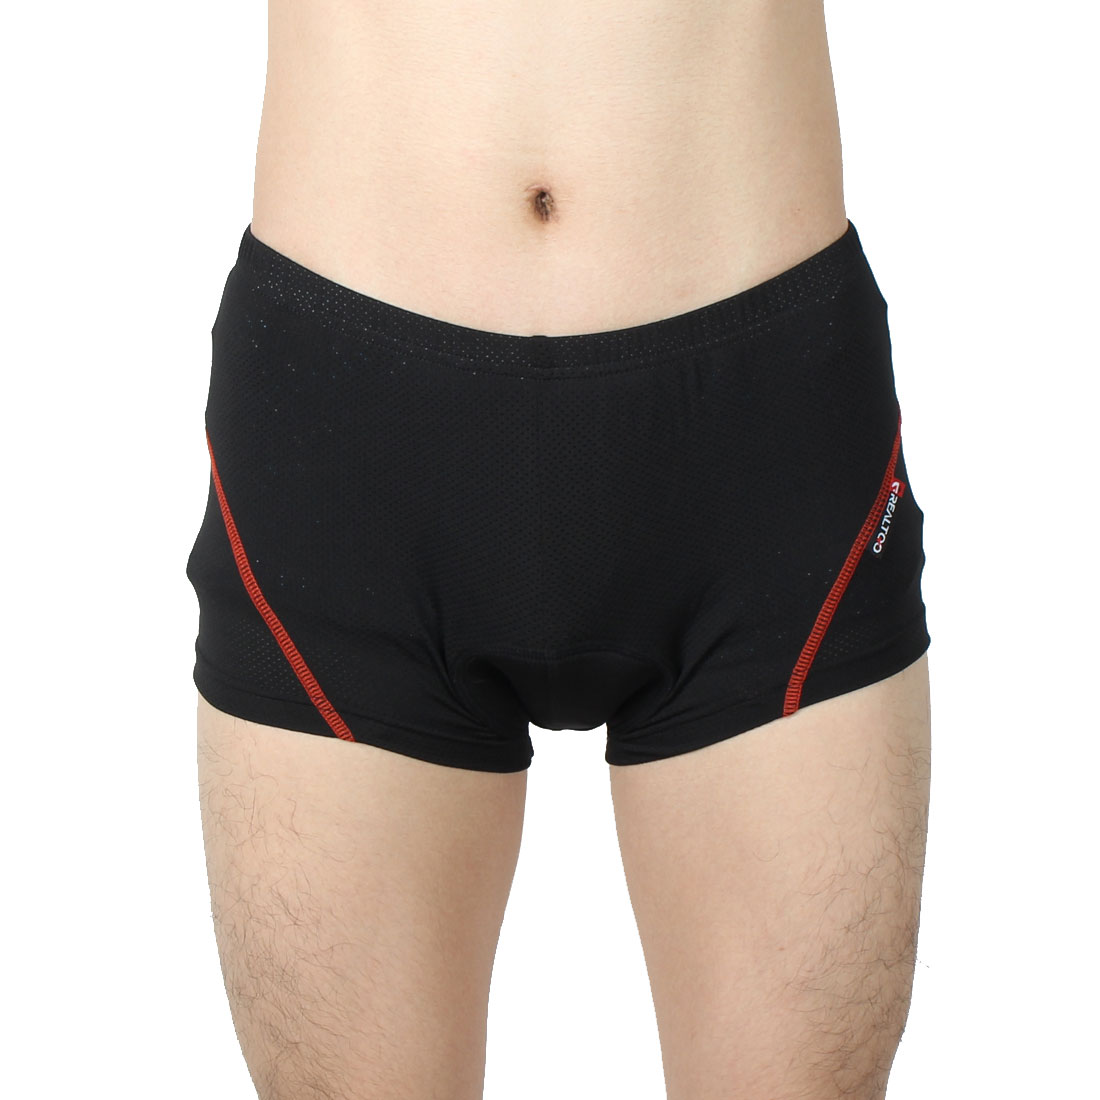 Men Bicycle Underwear 3D Padded Bike Breathable Sport Elastic Underpants Cycling Shorts Pants W28